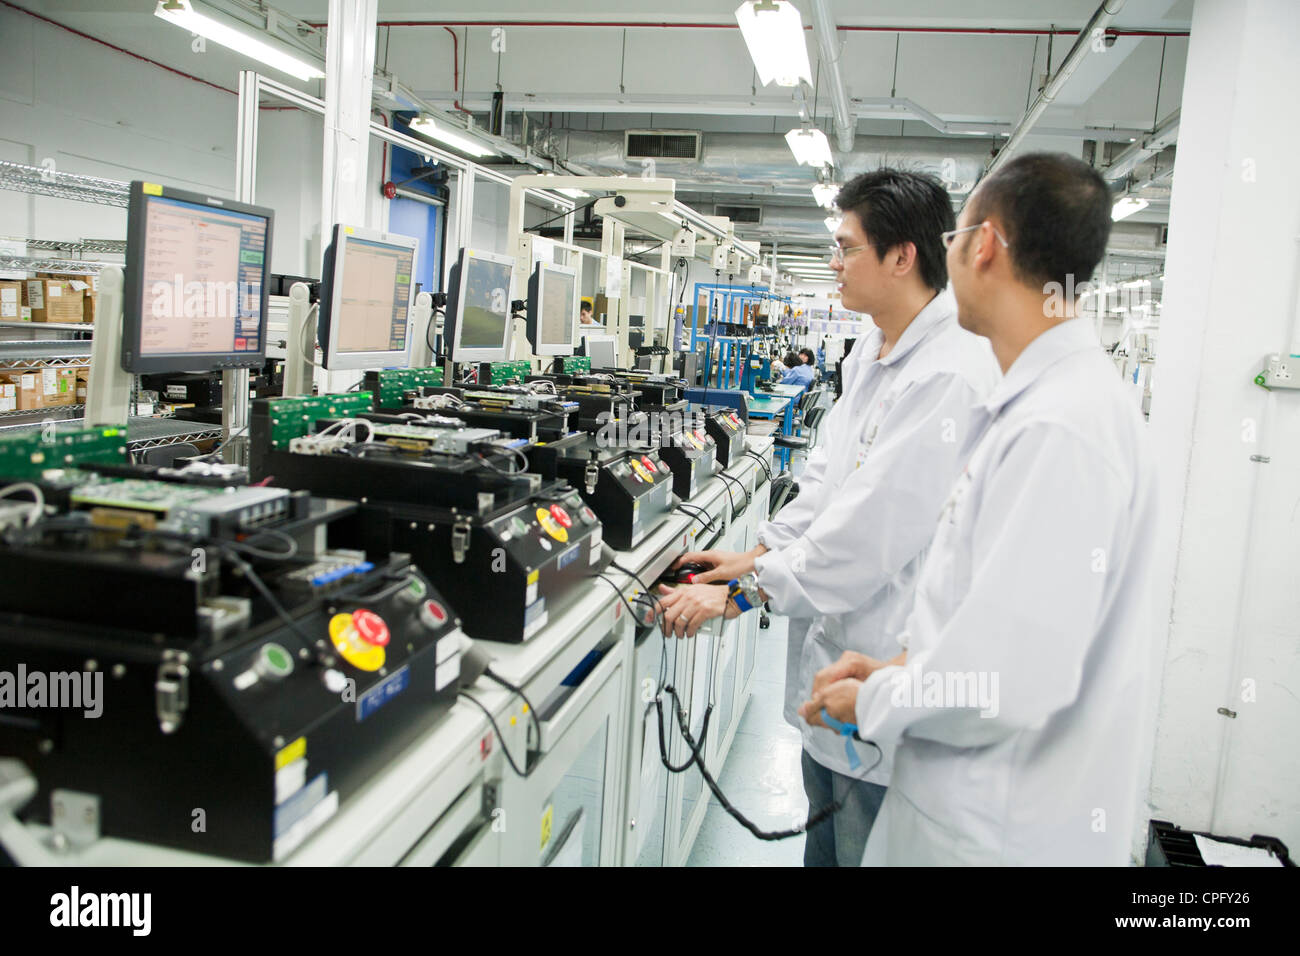 Workers assemble hand-held inventory computer devices on the assembly line at the Venture Corp. factory in Singapore - Stock Image